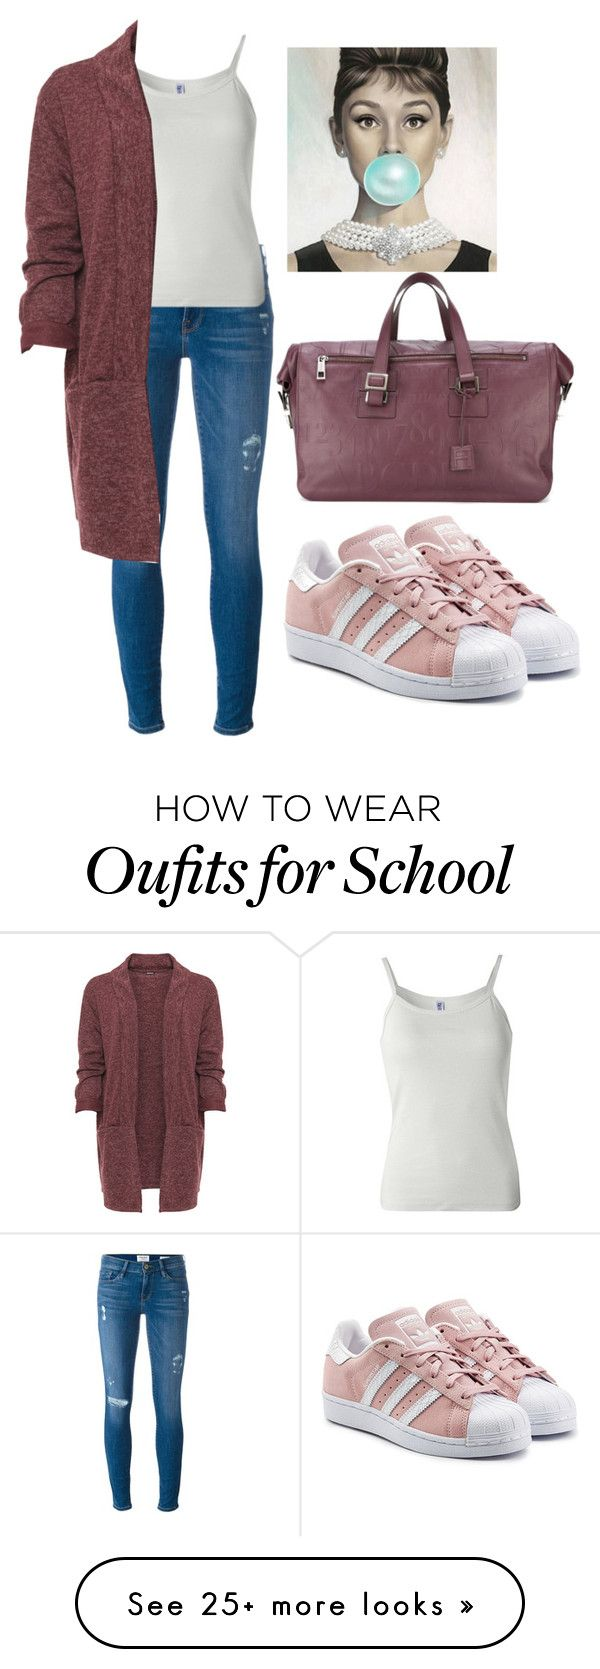 """school"" by anna-bigsis on Polyvore featuring adidas Originals, Frame, B. Ella, WearAll, Assouline Publishing and plus size clothing"